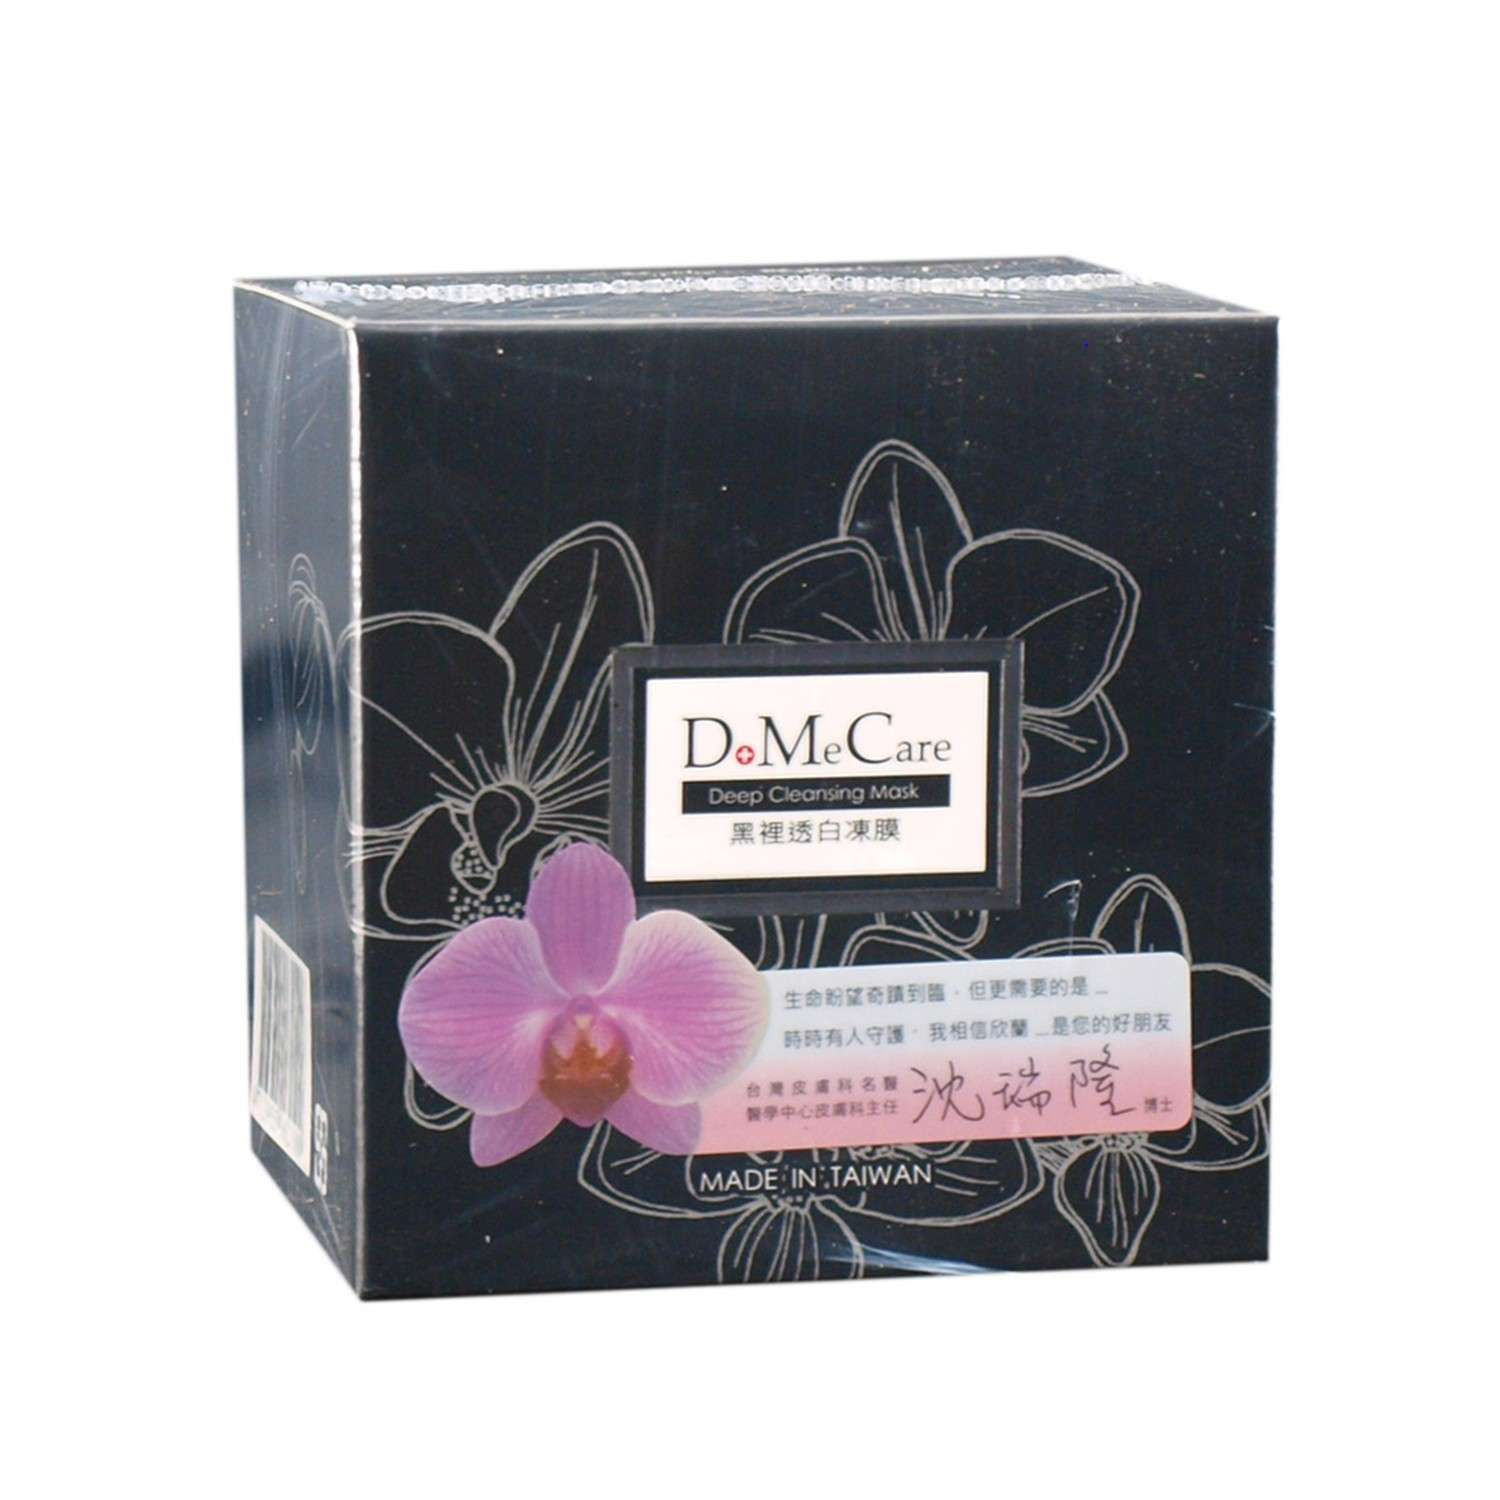 DMC(do me care) Deep Cleansing Mask (225 g)